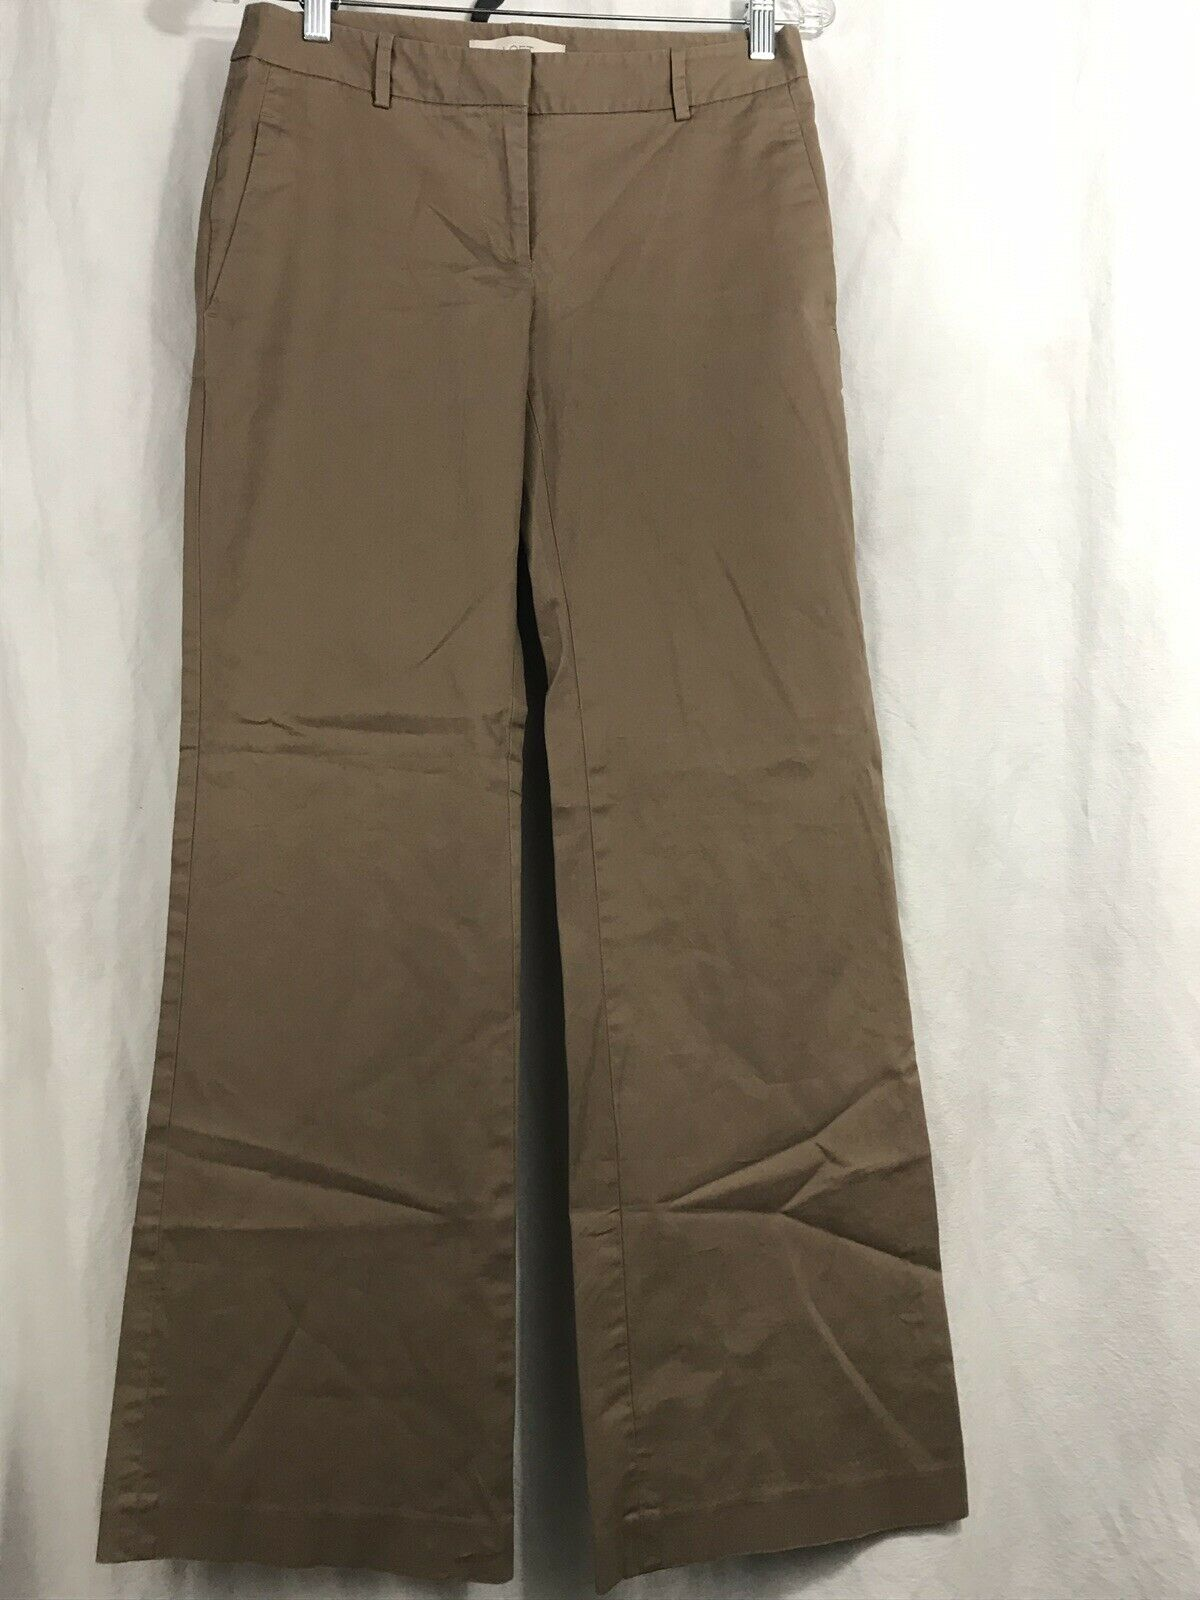 Ann Taylor LOFT Trouser Pants Womens Size 2 Tan Flat Front Dress Pants NWOT